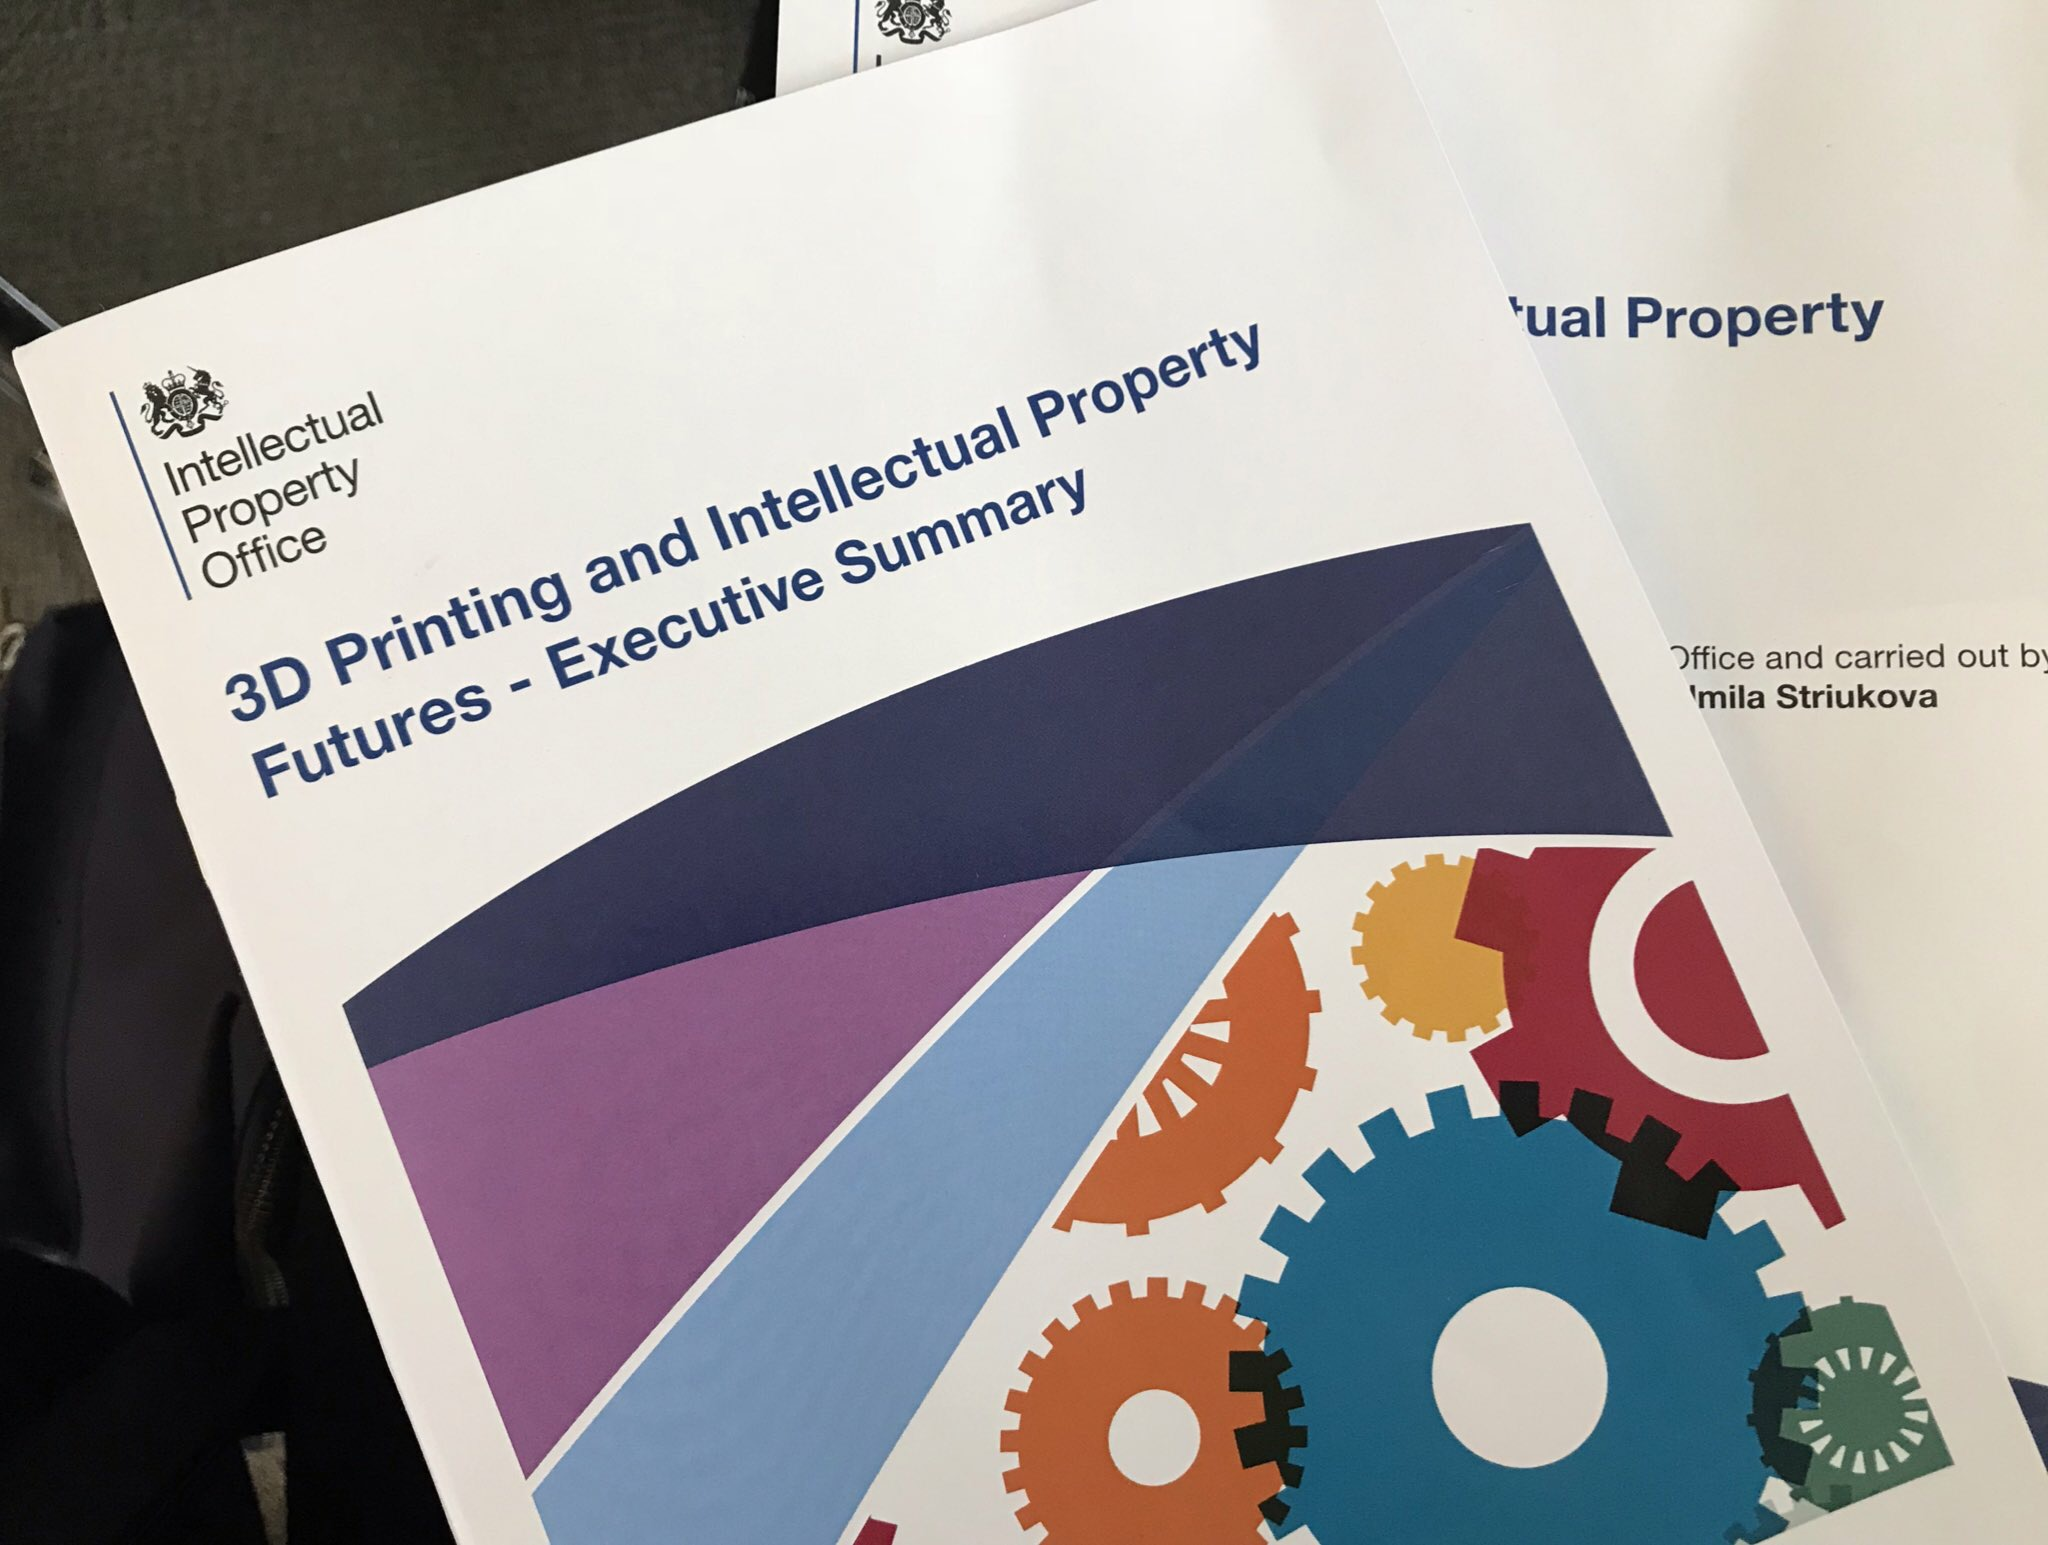 3D Printing certification and intellectual property futures executive summary.